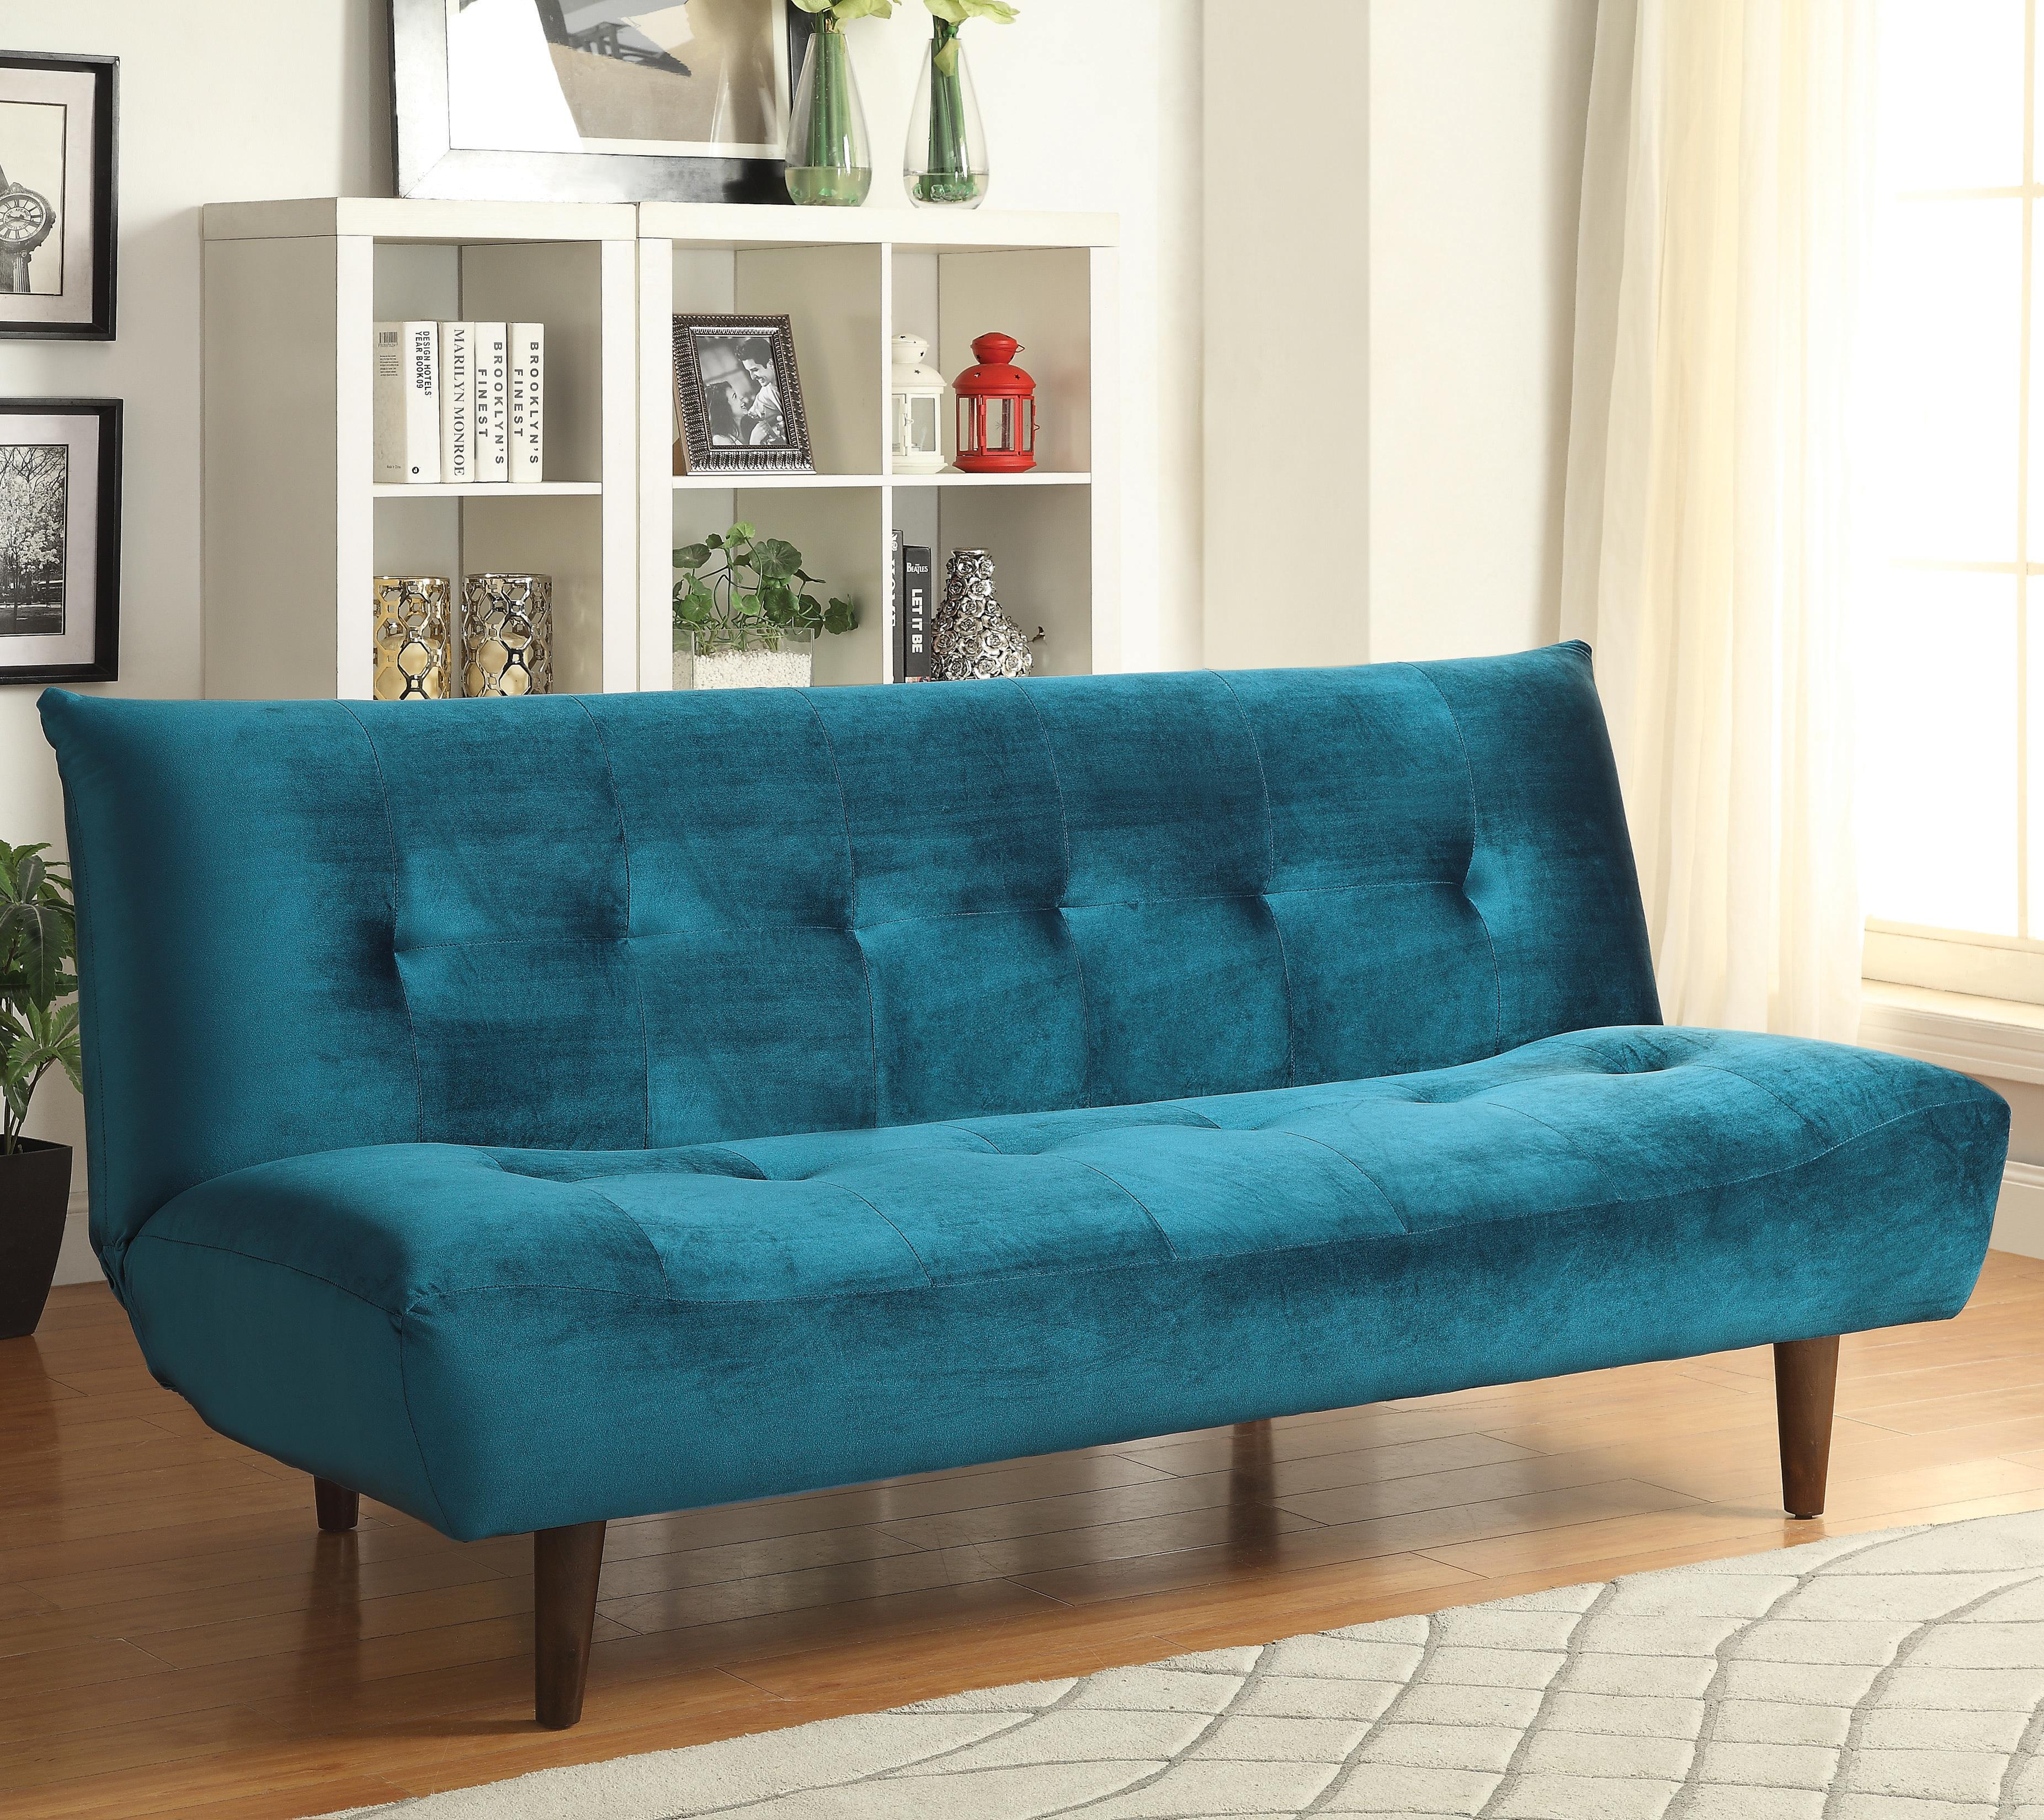 Sofa Beds And Futons Teal Velvet Sofa Bed With Solid Wood Legs Tufted Back By Coaster At Value City Furniture